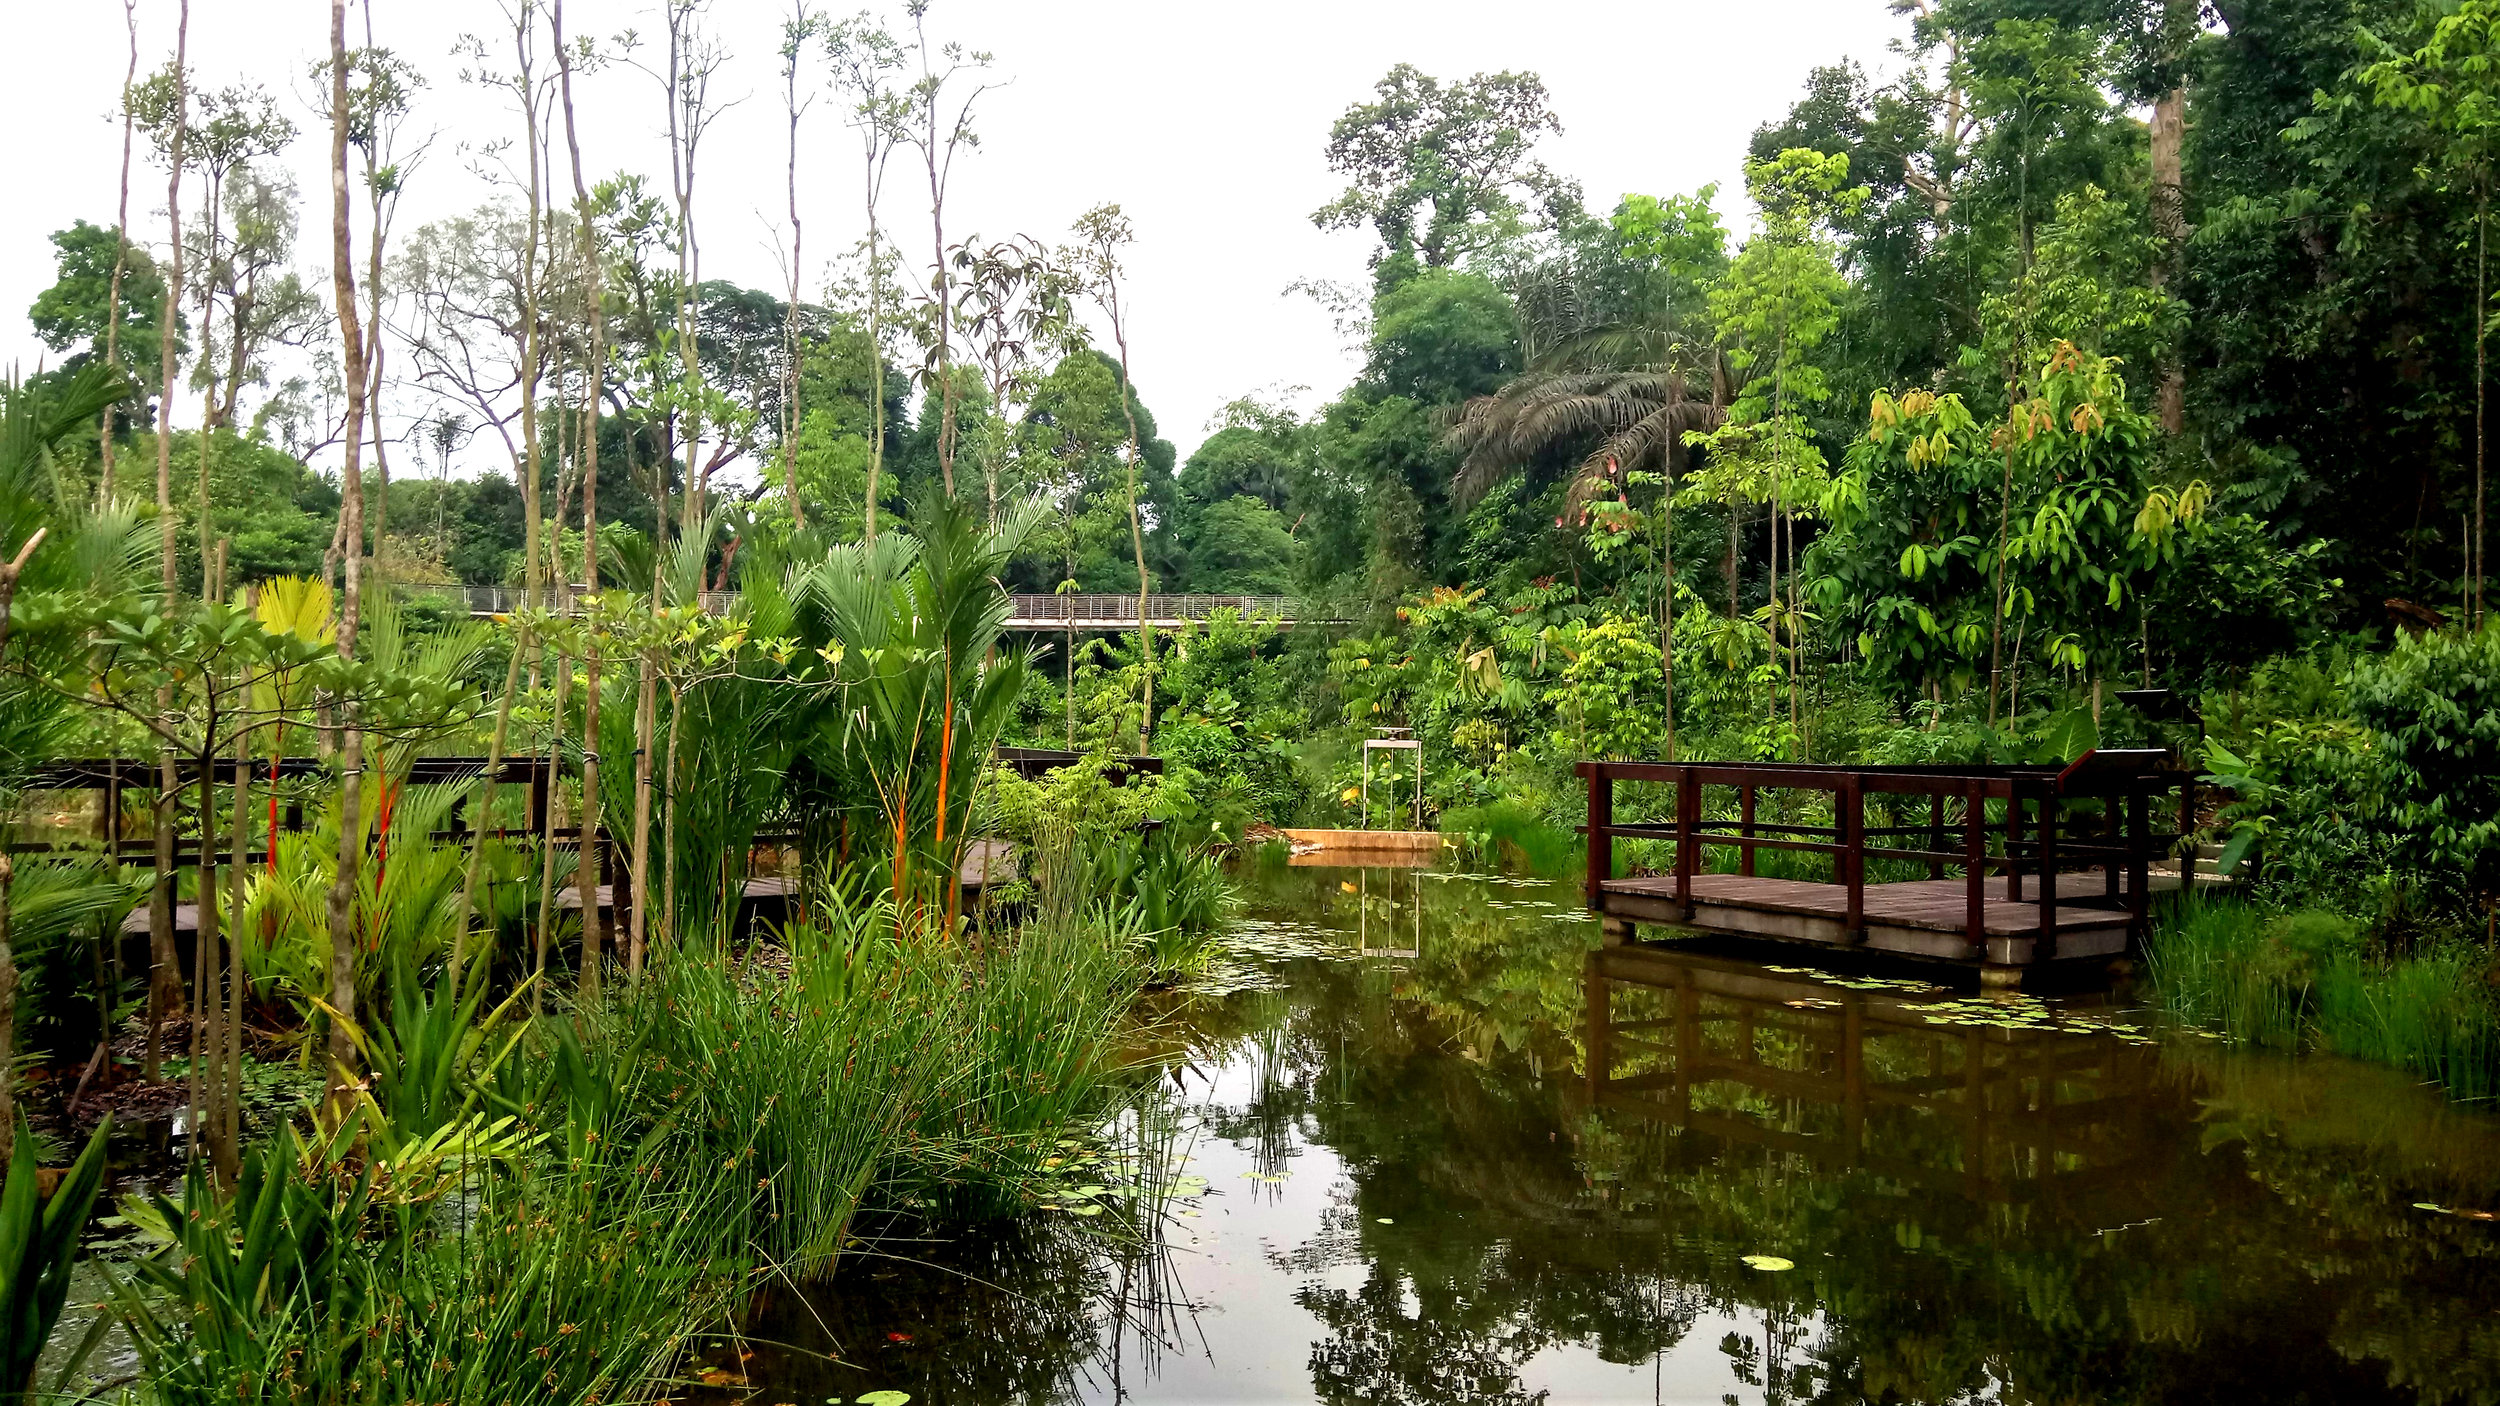 View of Pulai Marsh / Swamp Forest with jetty and sluice gate water control mechanism. Photo by Stephen Caffyn Landscape Design